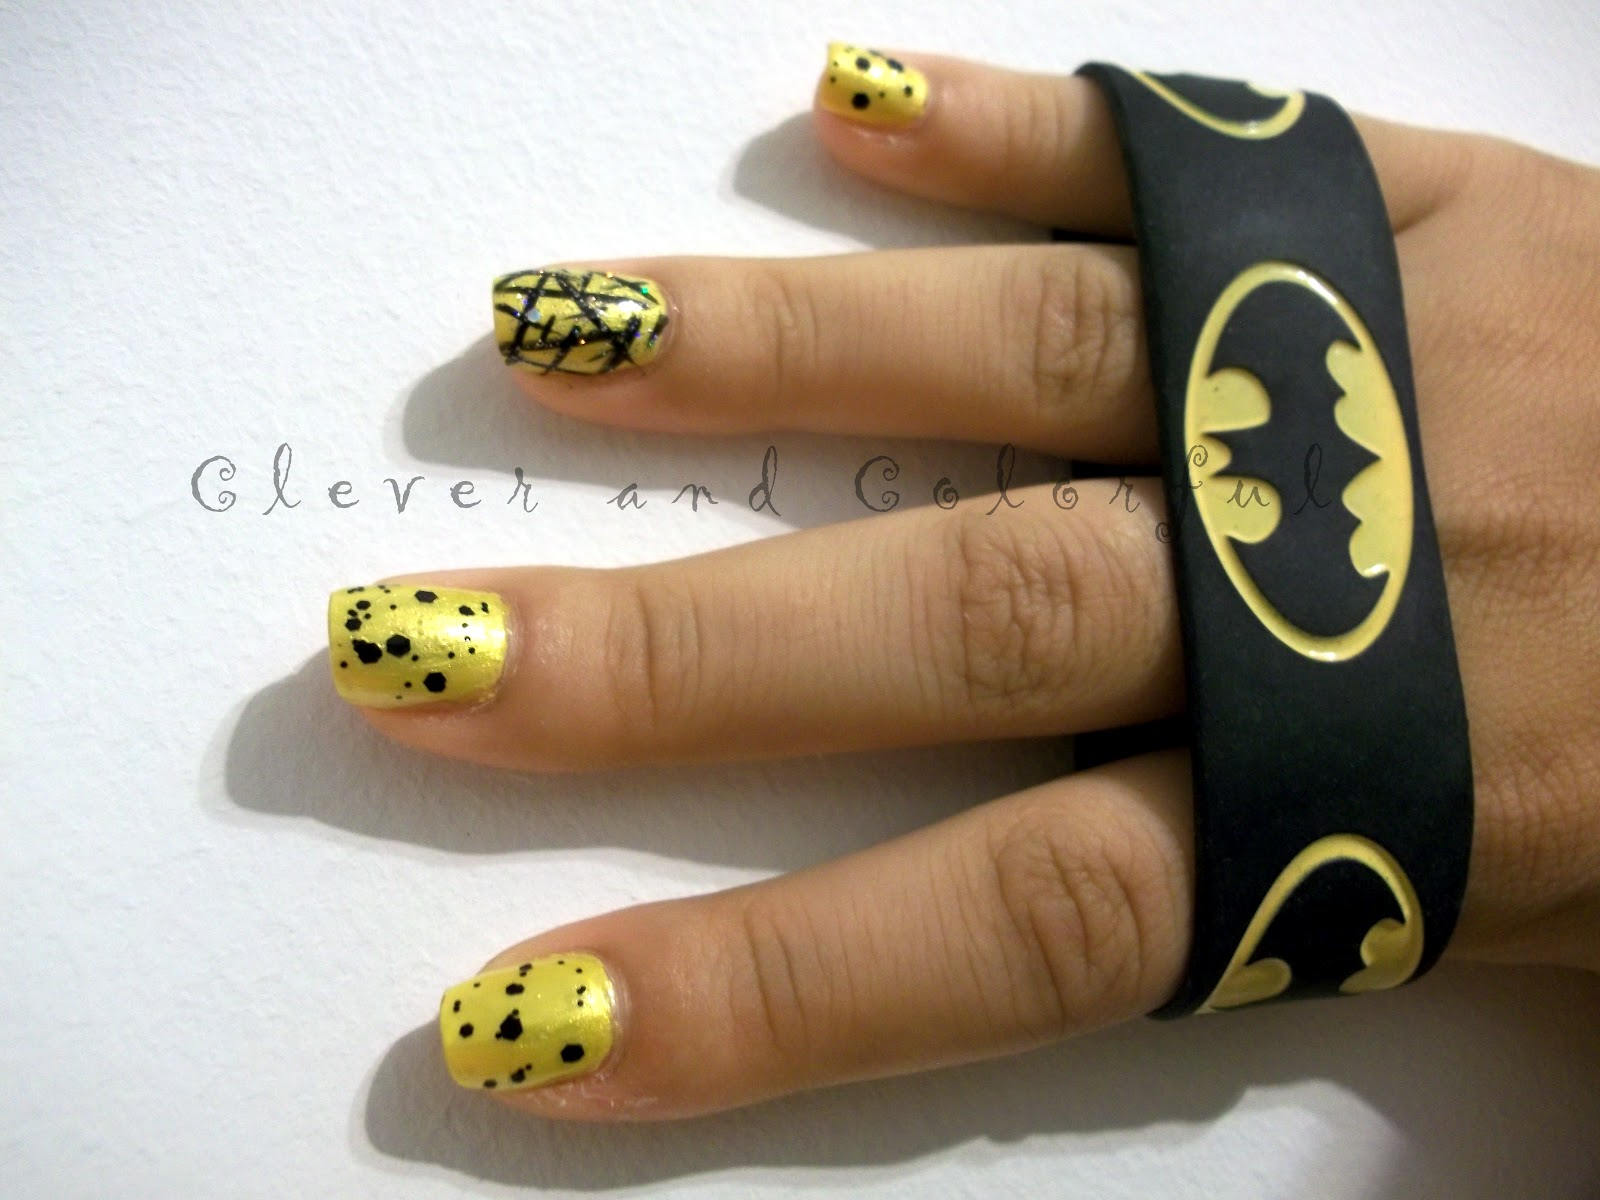 Clever and colorful batman inspired nails for otakon batman inspired nails for otakon prinsesfo Image collections